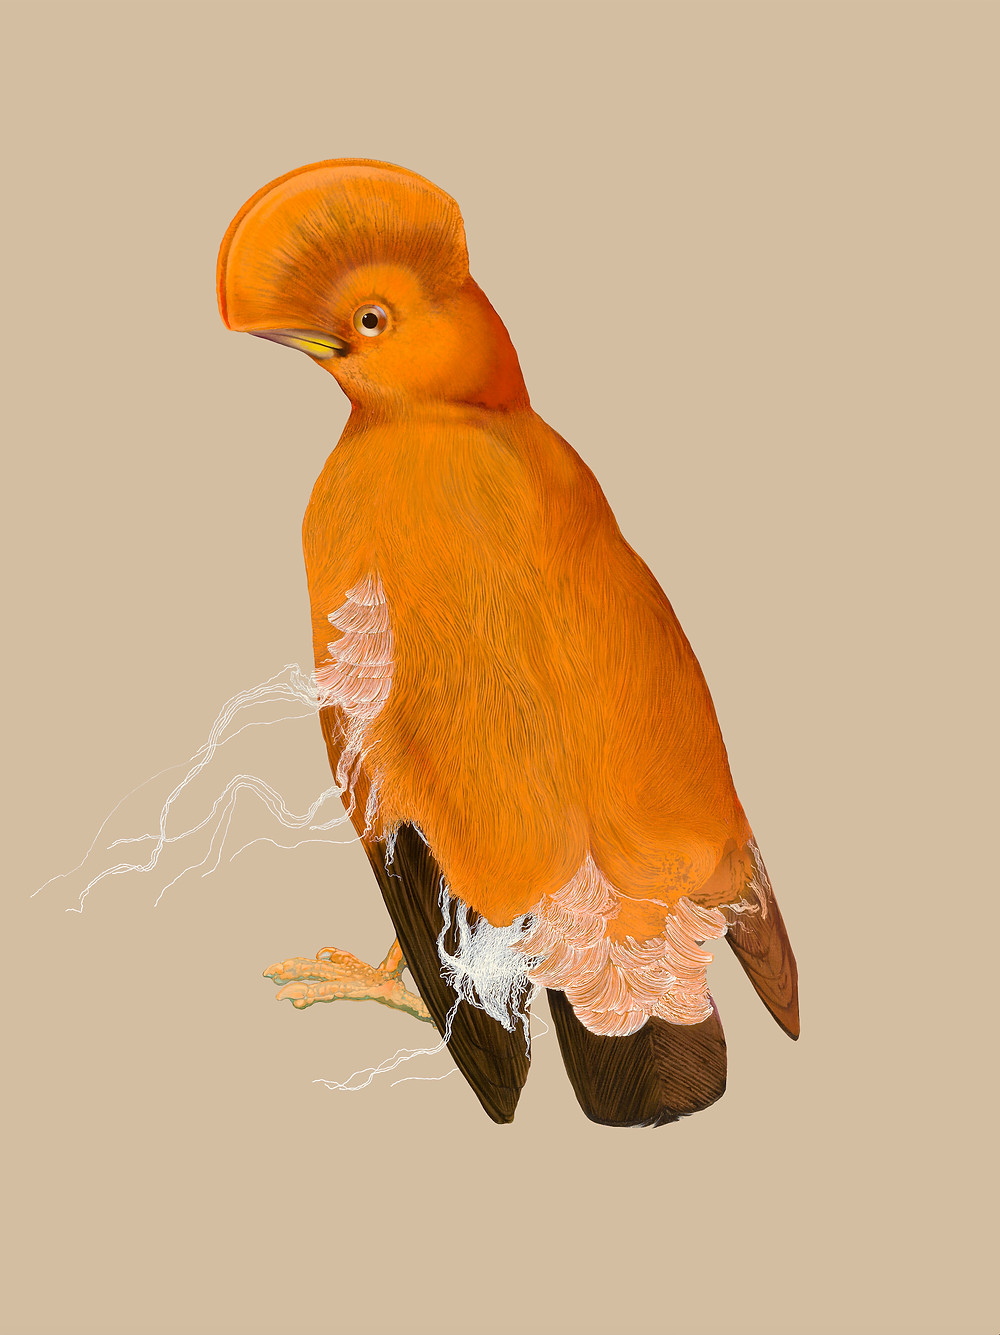 Sub-tropical bird with bright orange plumage and an impressive curved crest of head feathers